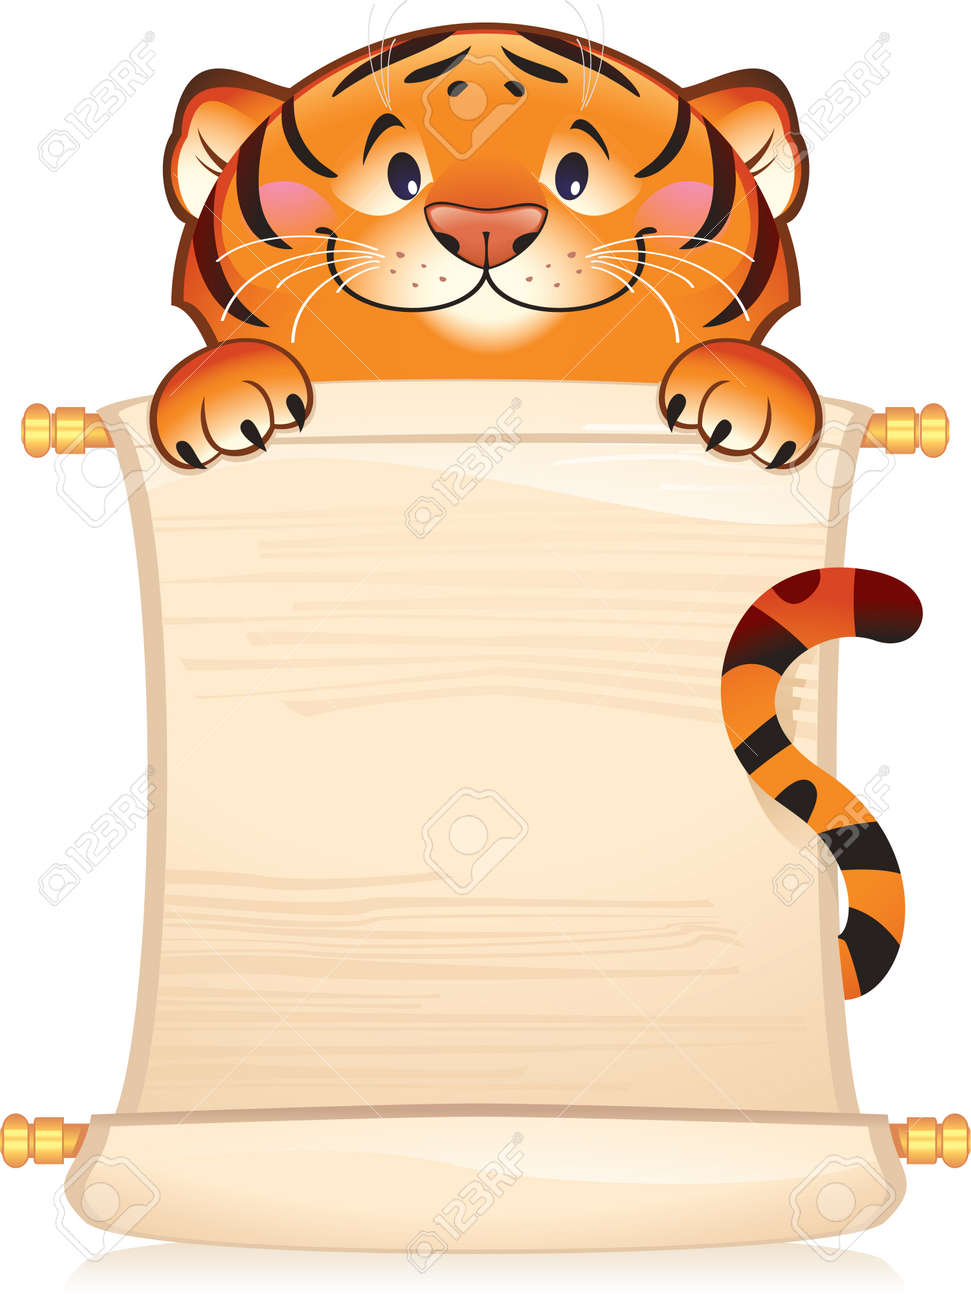 Tiger with scroll - 6138219